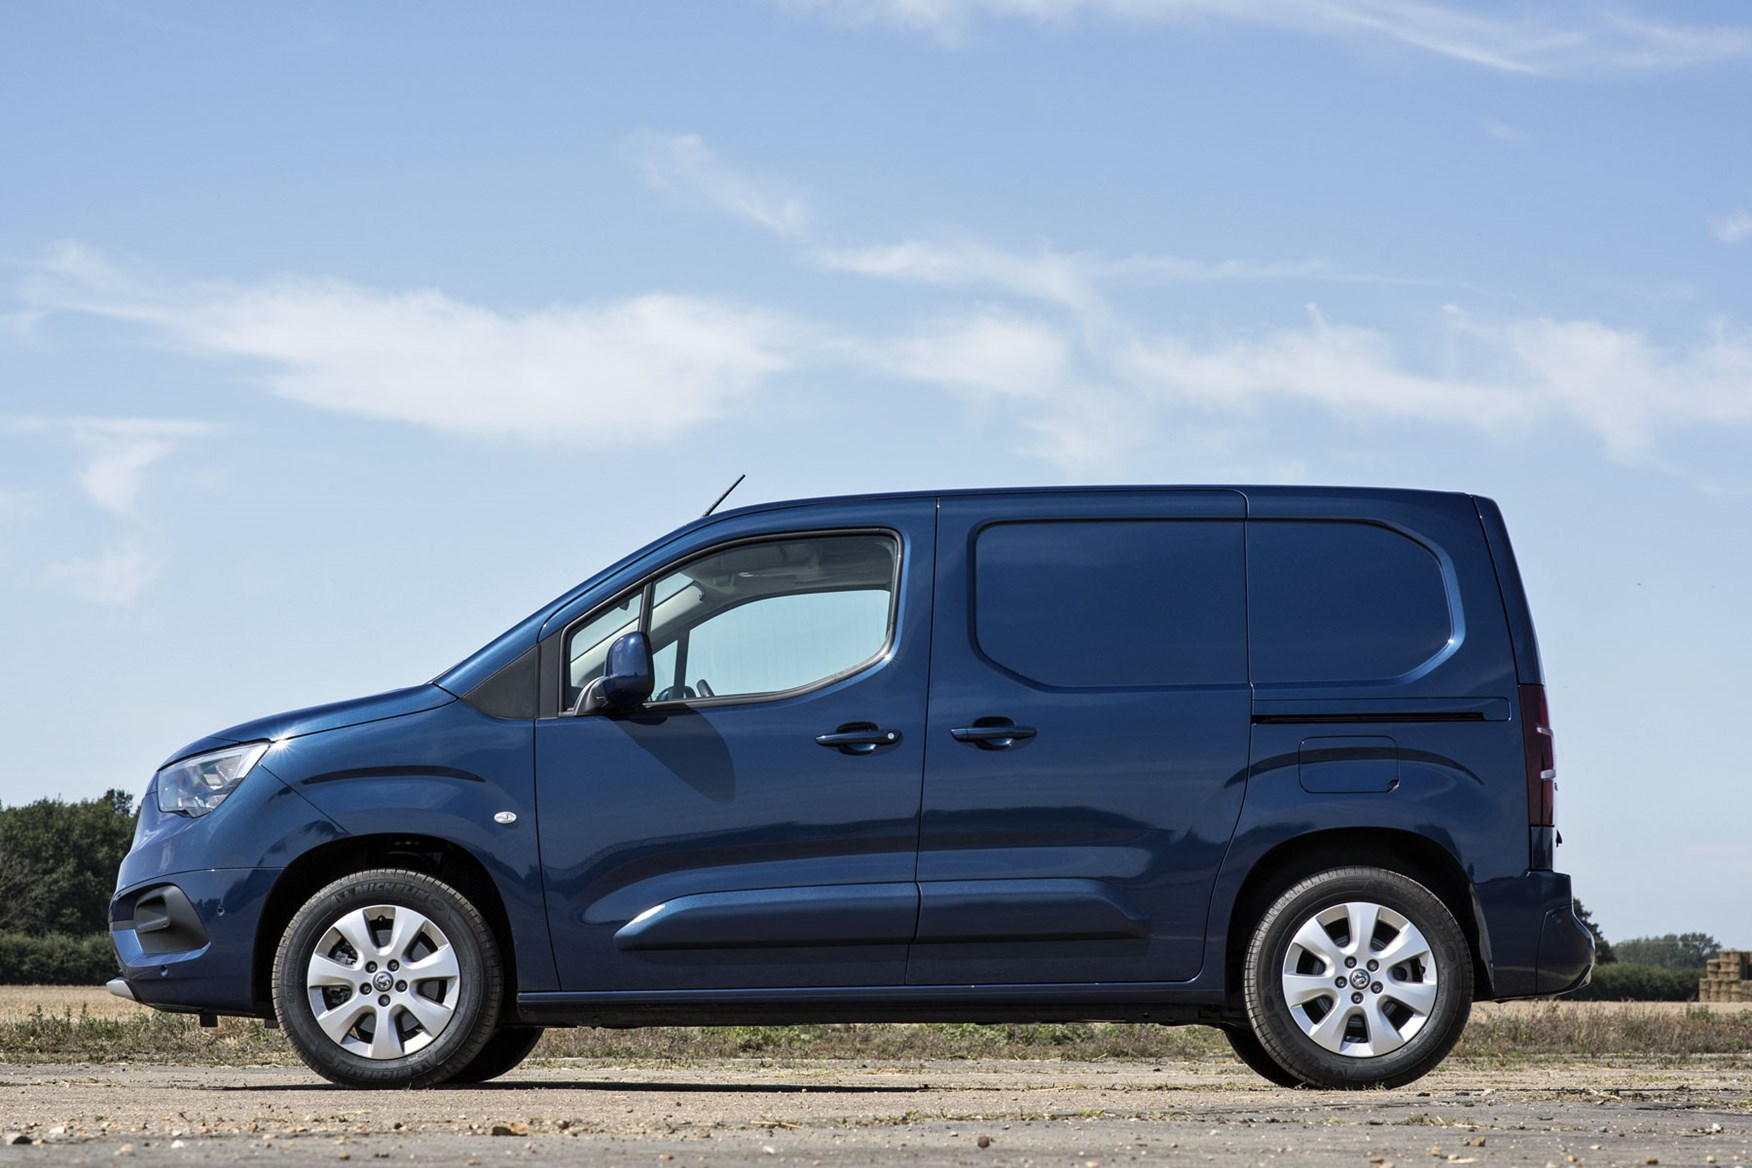 Vauxhall Combo Cargo review - 2019 model, side view, blue, L1